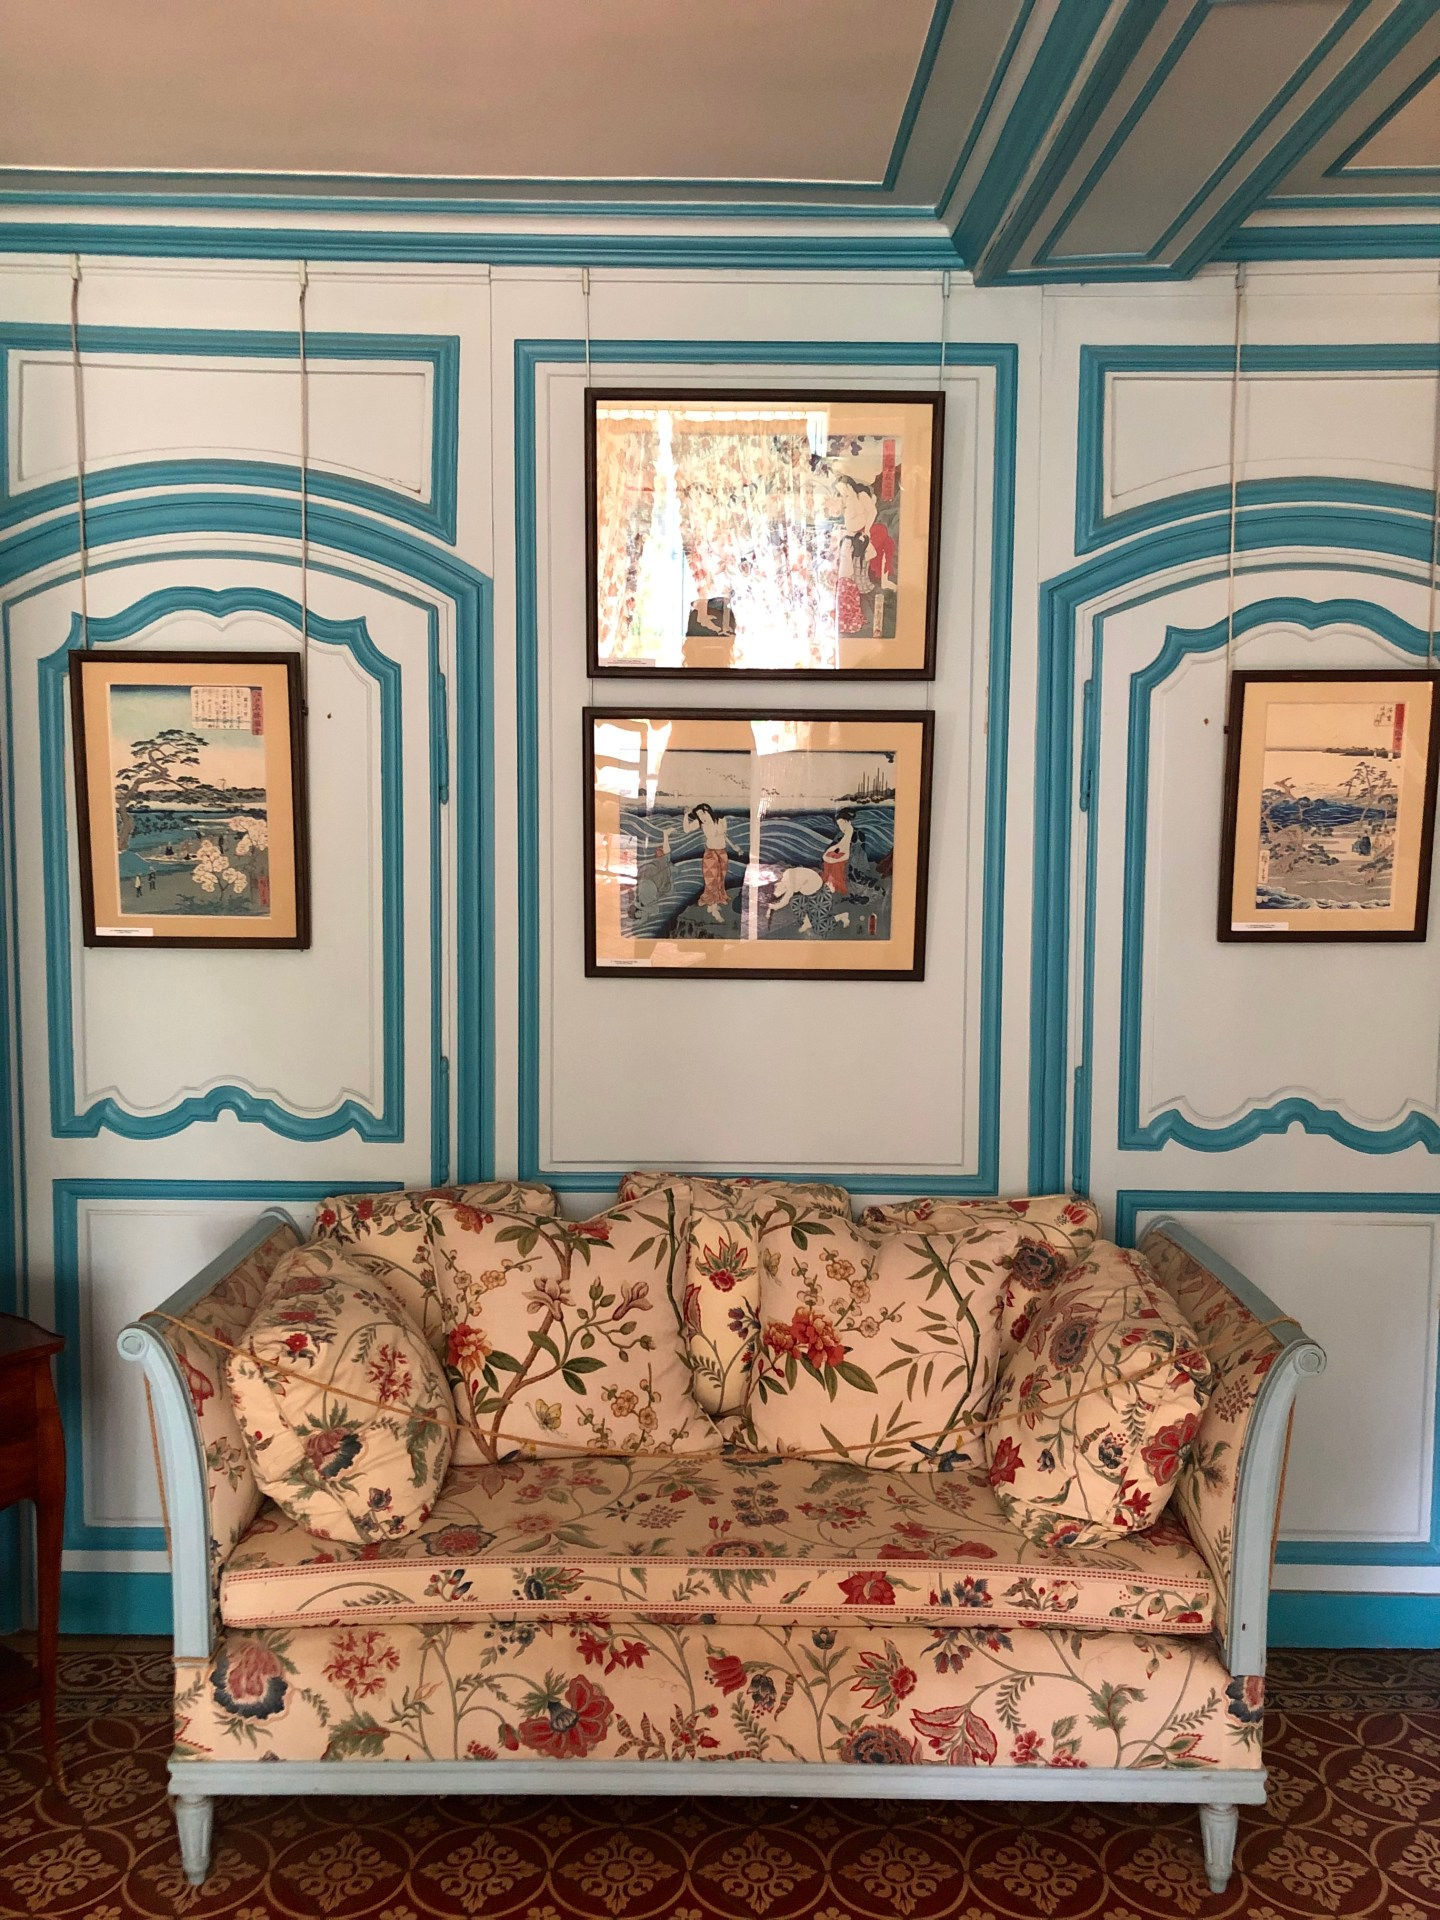 The blue sitting room of Claude Monet is adorned with his collection of Japanese Ukiyo-e wood block prints. The walls and furniture are two blends of pale blue and teal with an appealing contrast of pink floral.